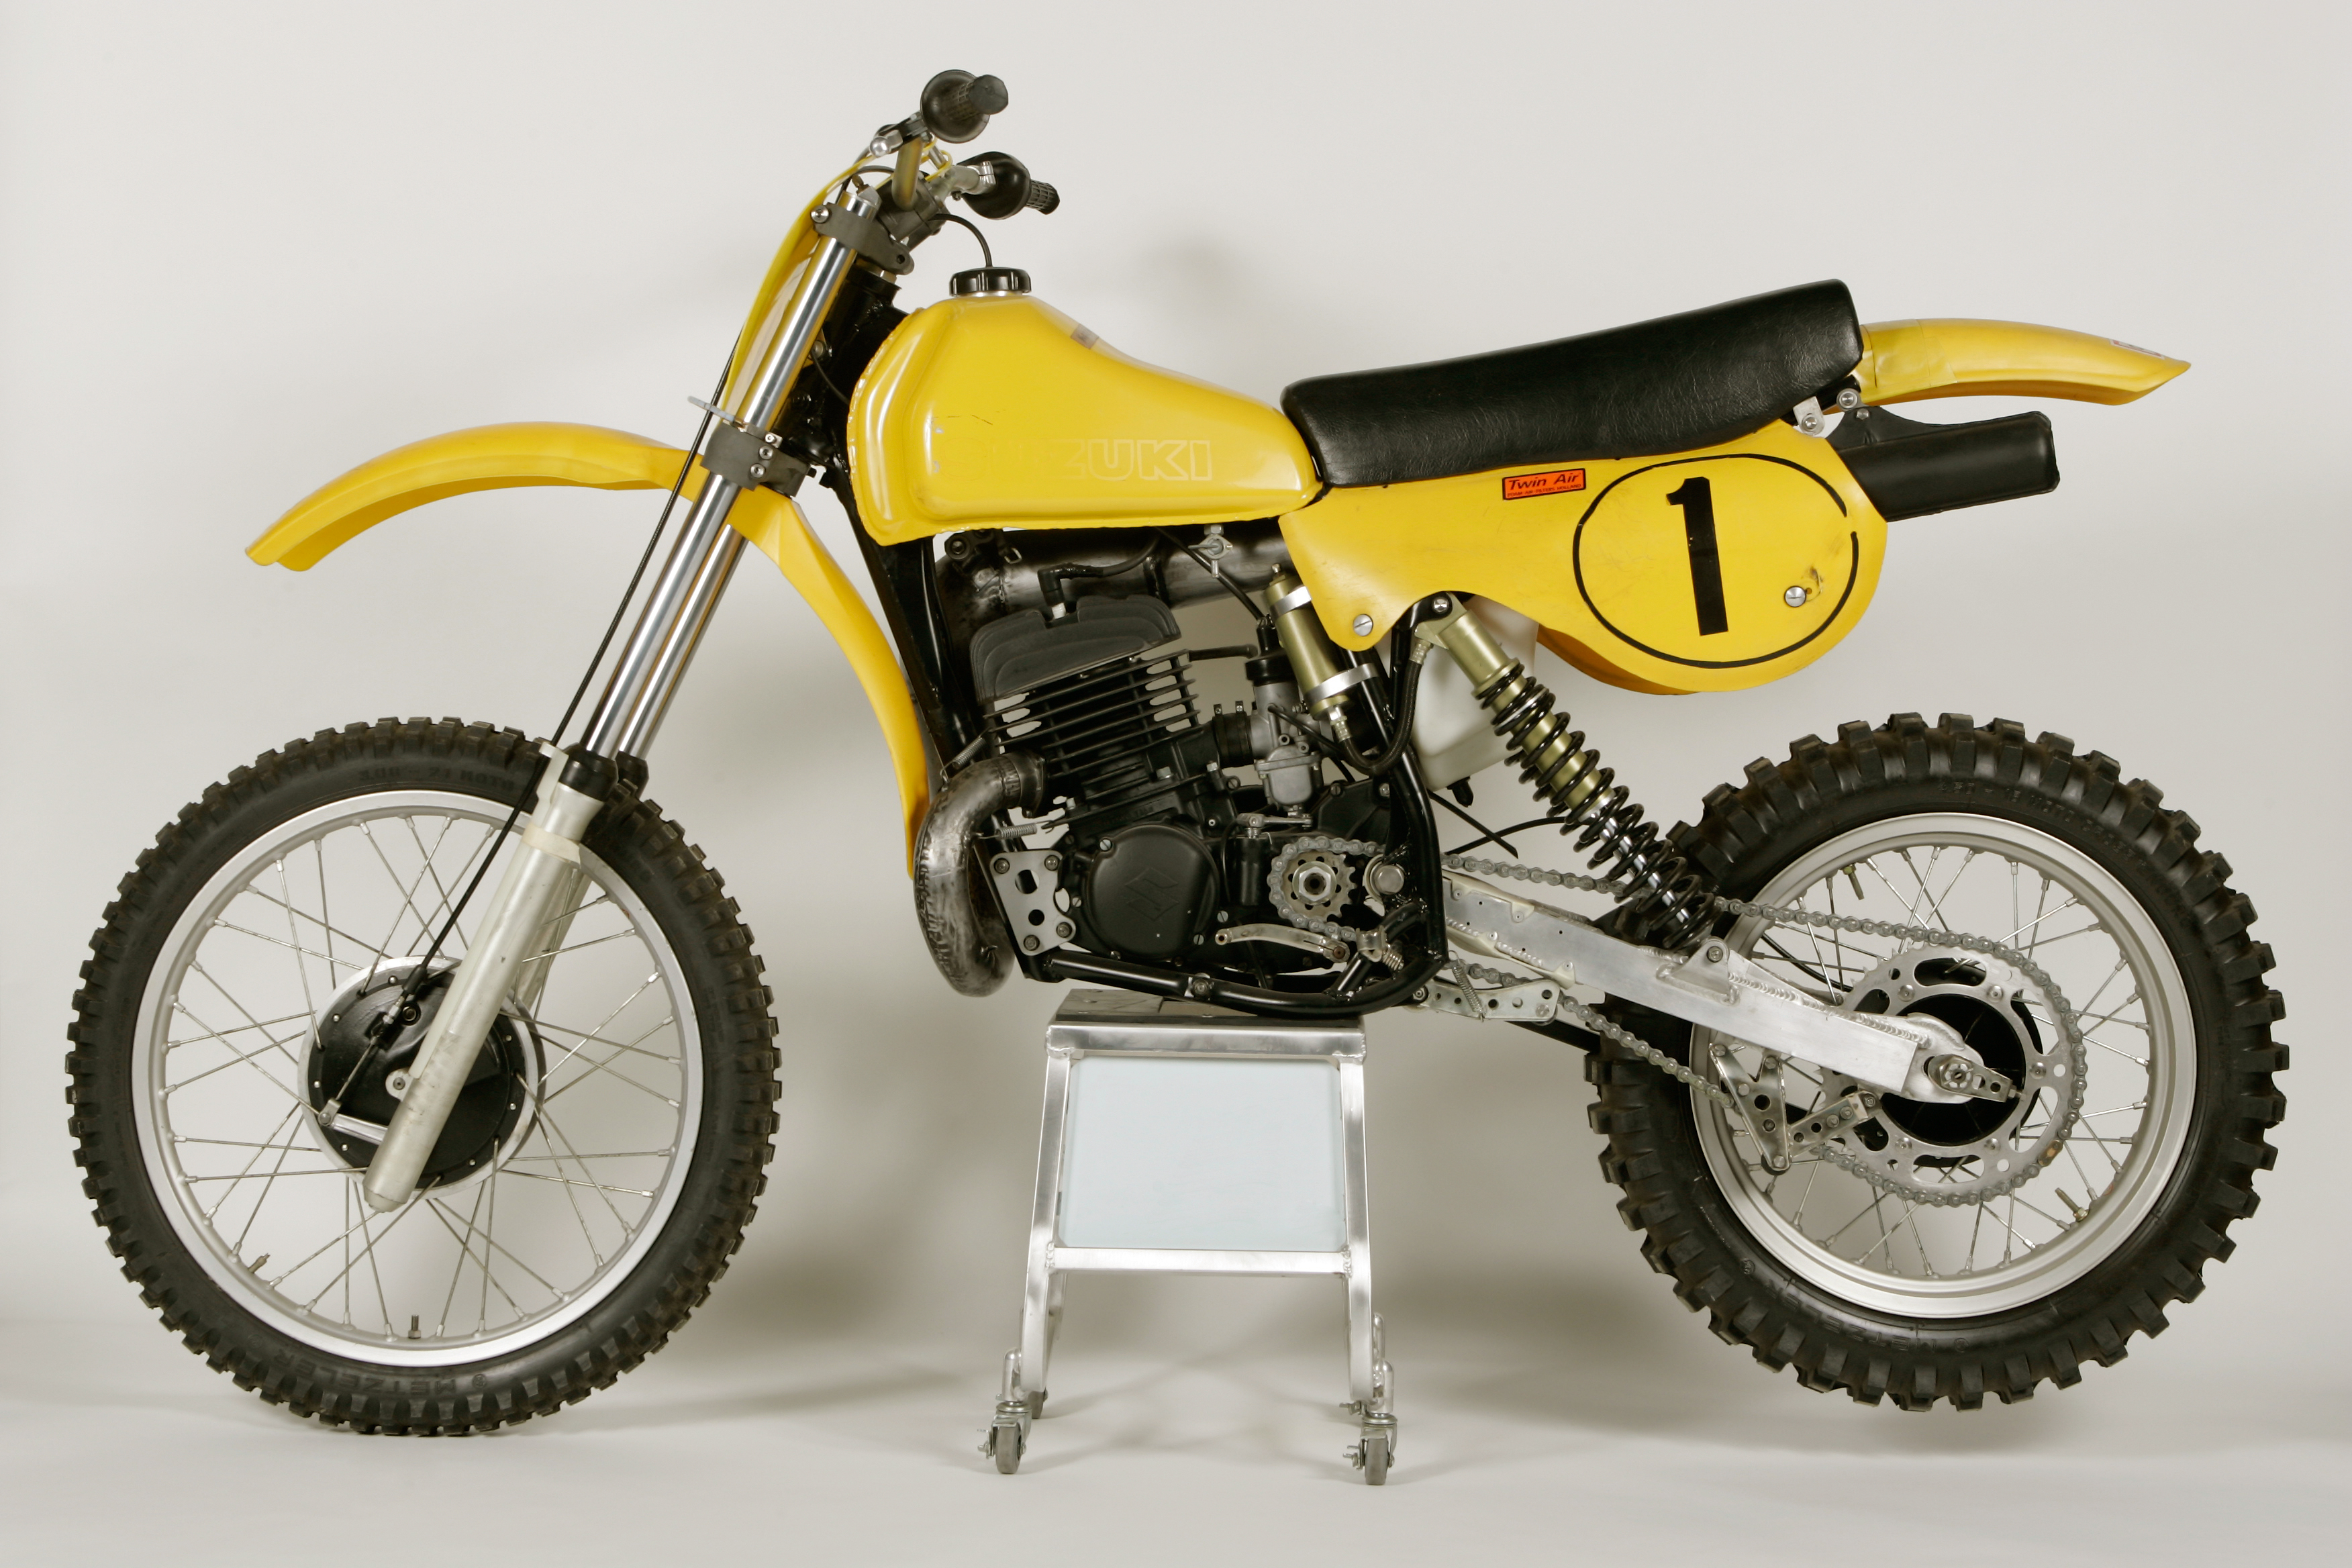 Harry Everts Suzuki